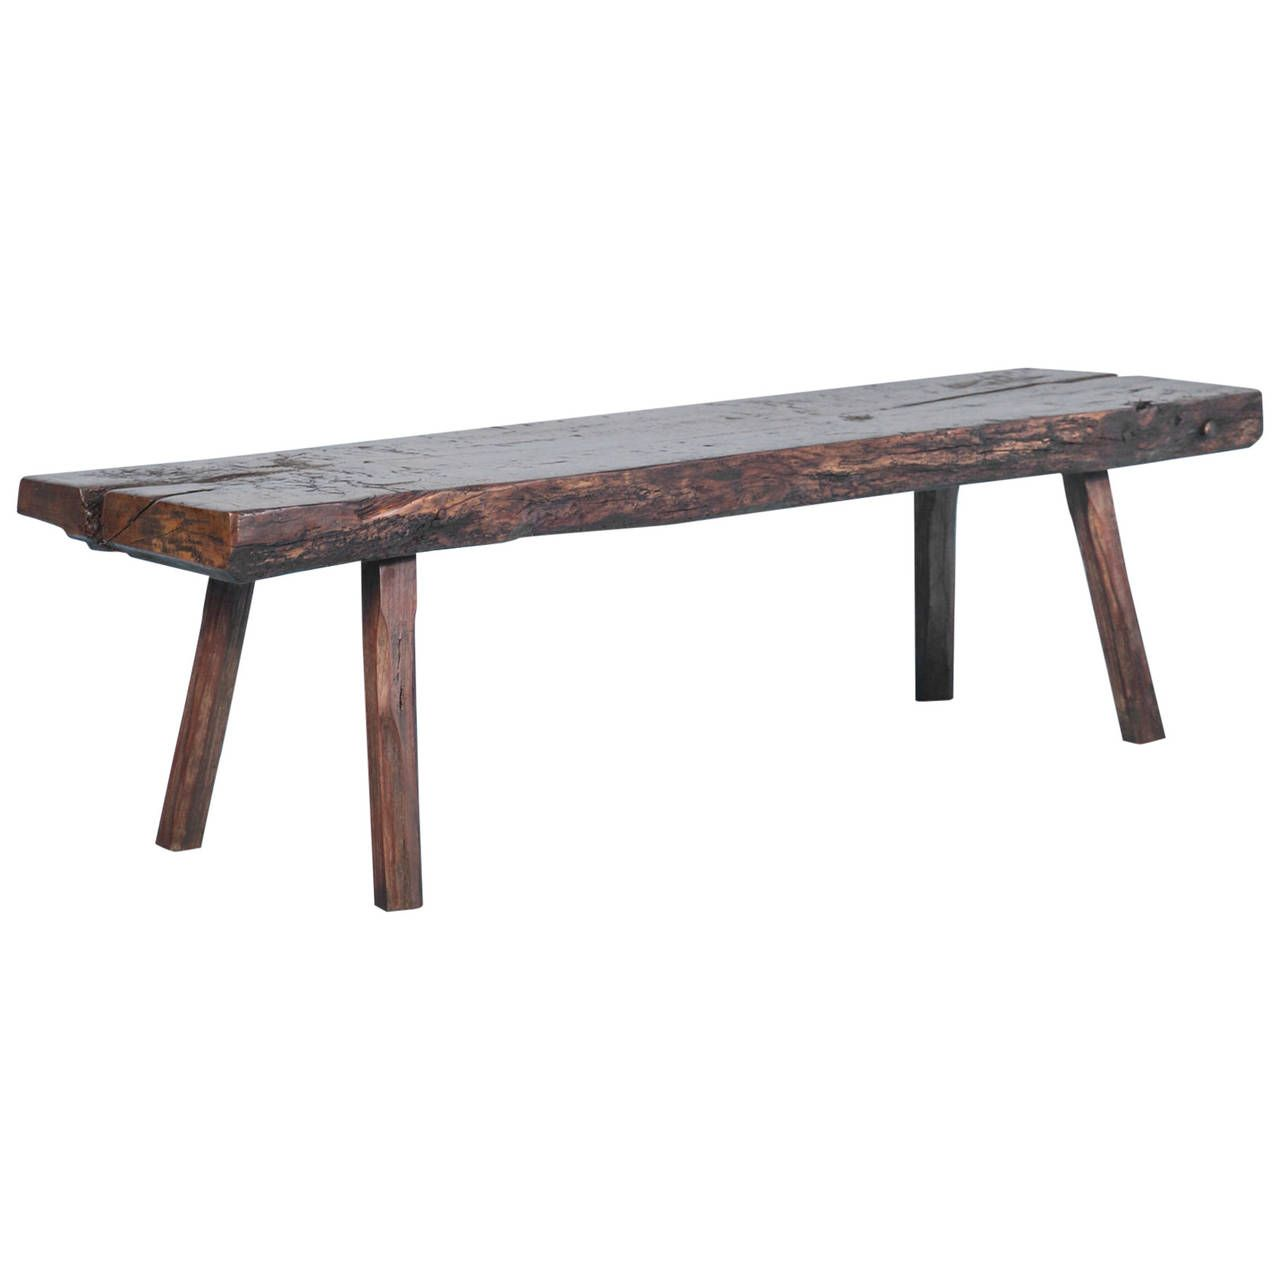 Rustic Antique Narrow Coffee Table Circa 1820 1830 With Images Narrow Coffee Table Coffee Table Coffee Table Wood